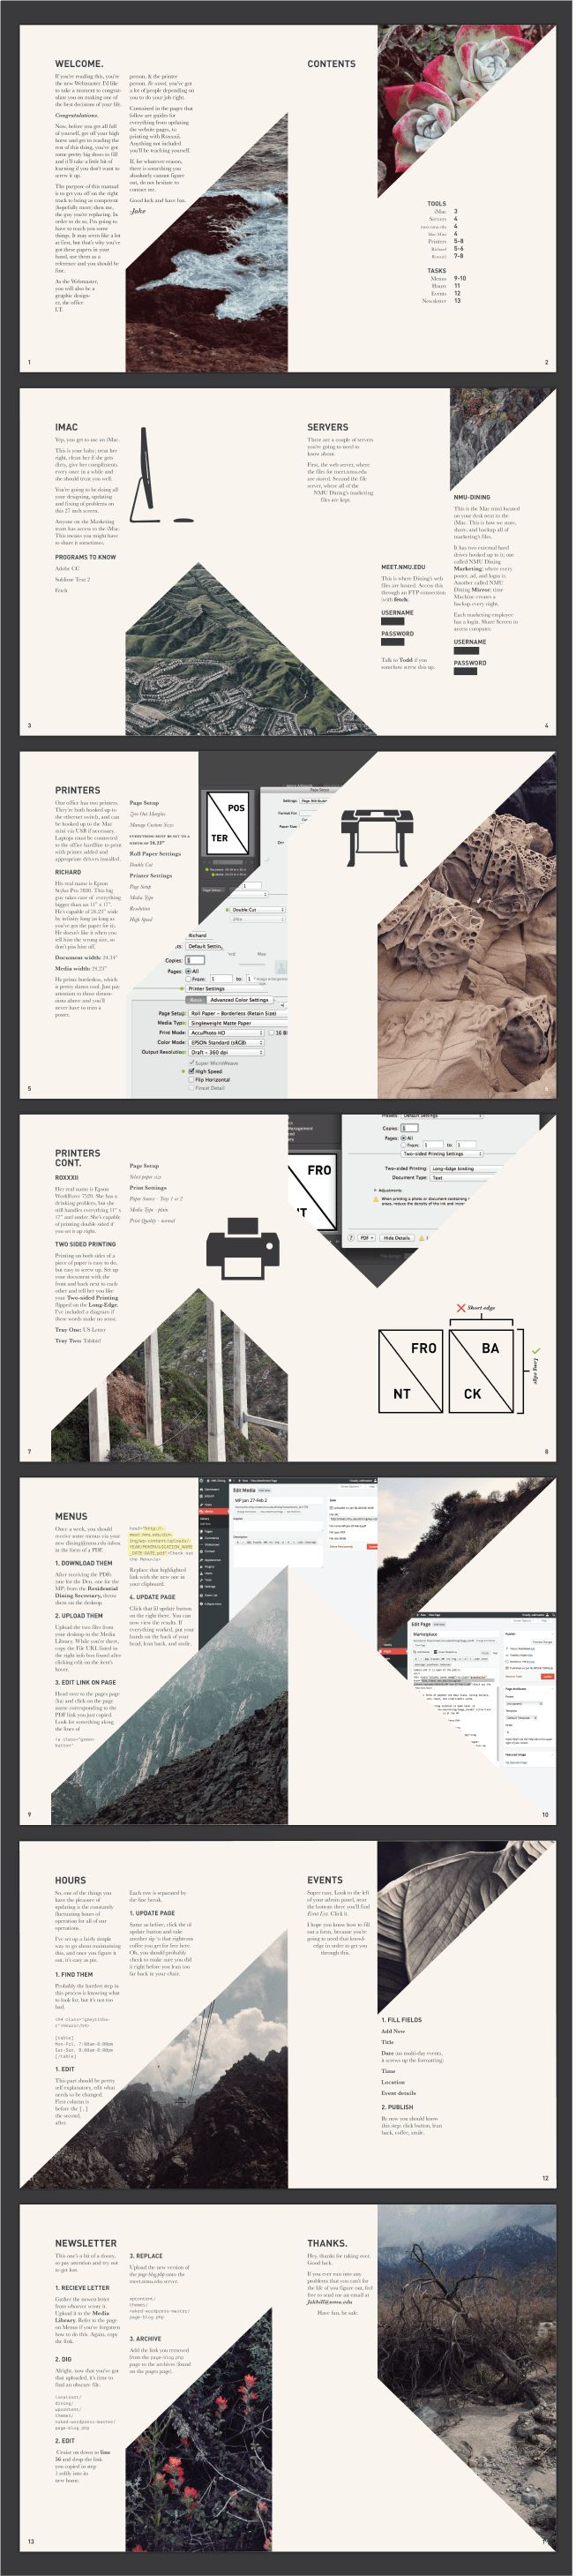 Mydesy typesetting design pinterest for D architecture magazine